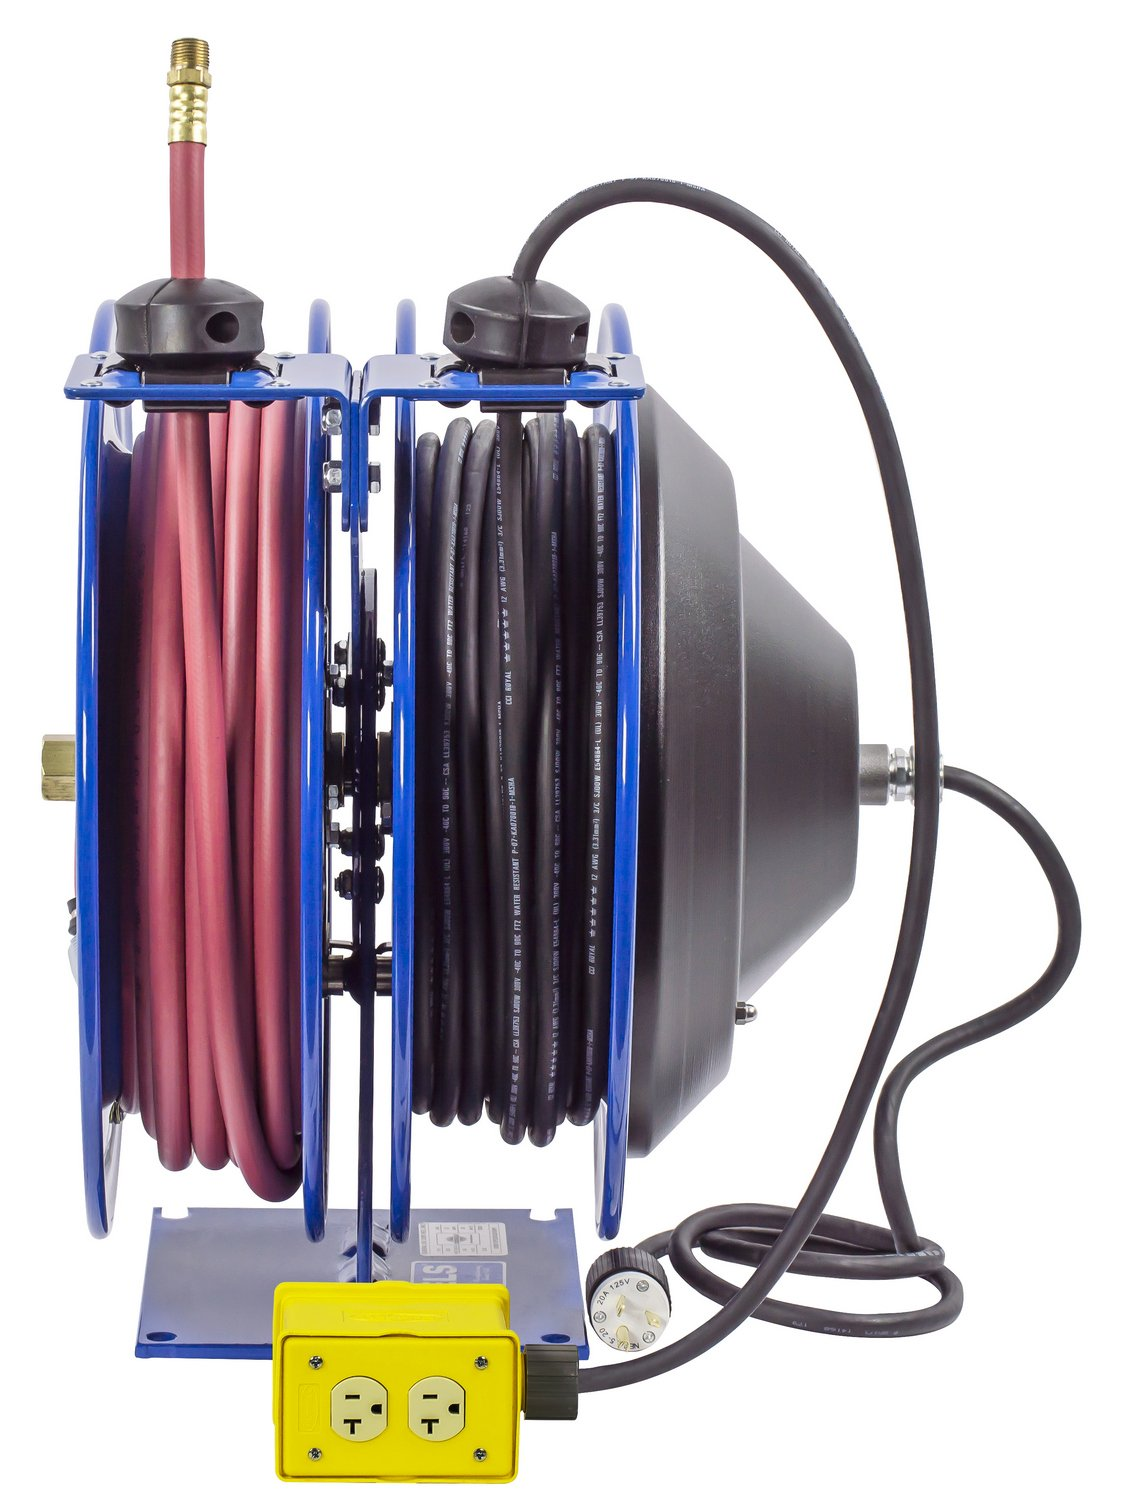 Coxreels C-L350-5012-B Combo Air and Electric Hose Reel with Quad Outlet Attachment, 3/8'' Hose ID, 50' Length by Coxreels (Image #2)